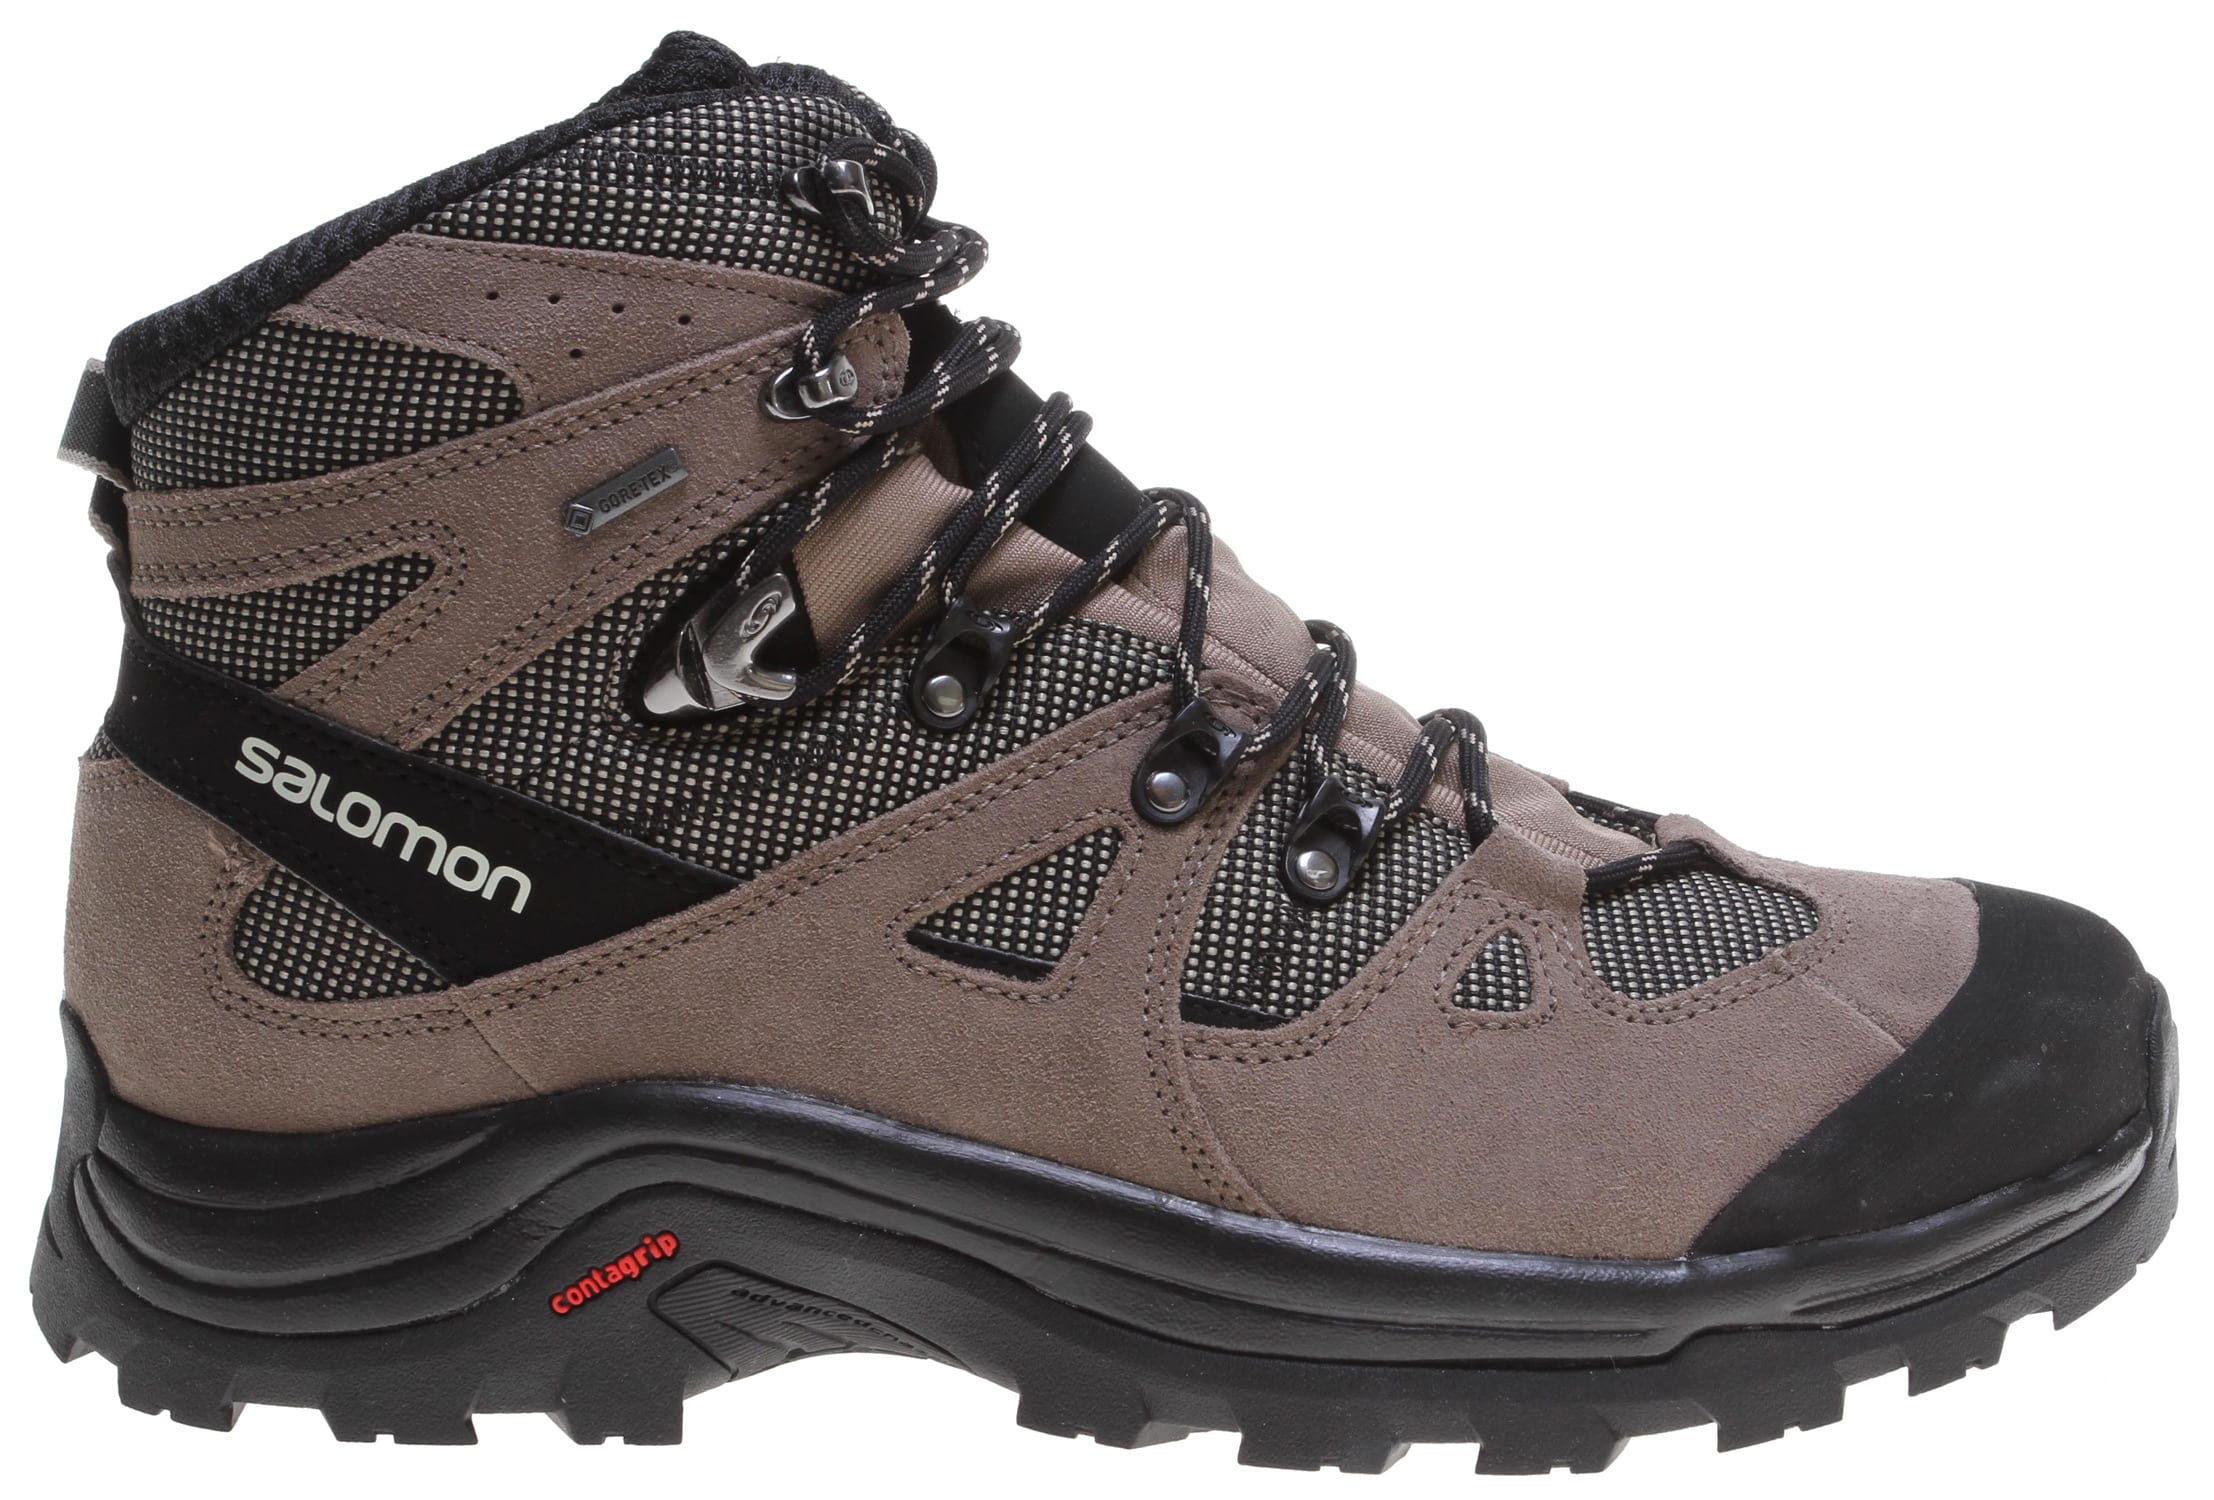 Salomon Discovery GTX Hiking Boots - thumbnail 1